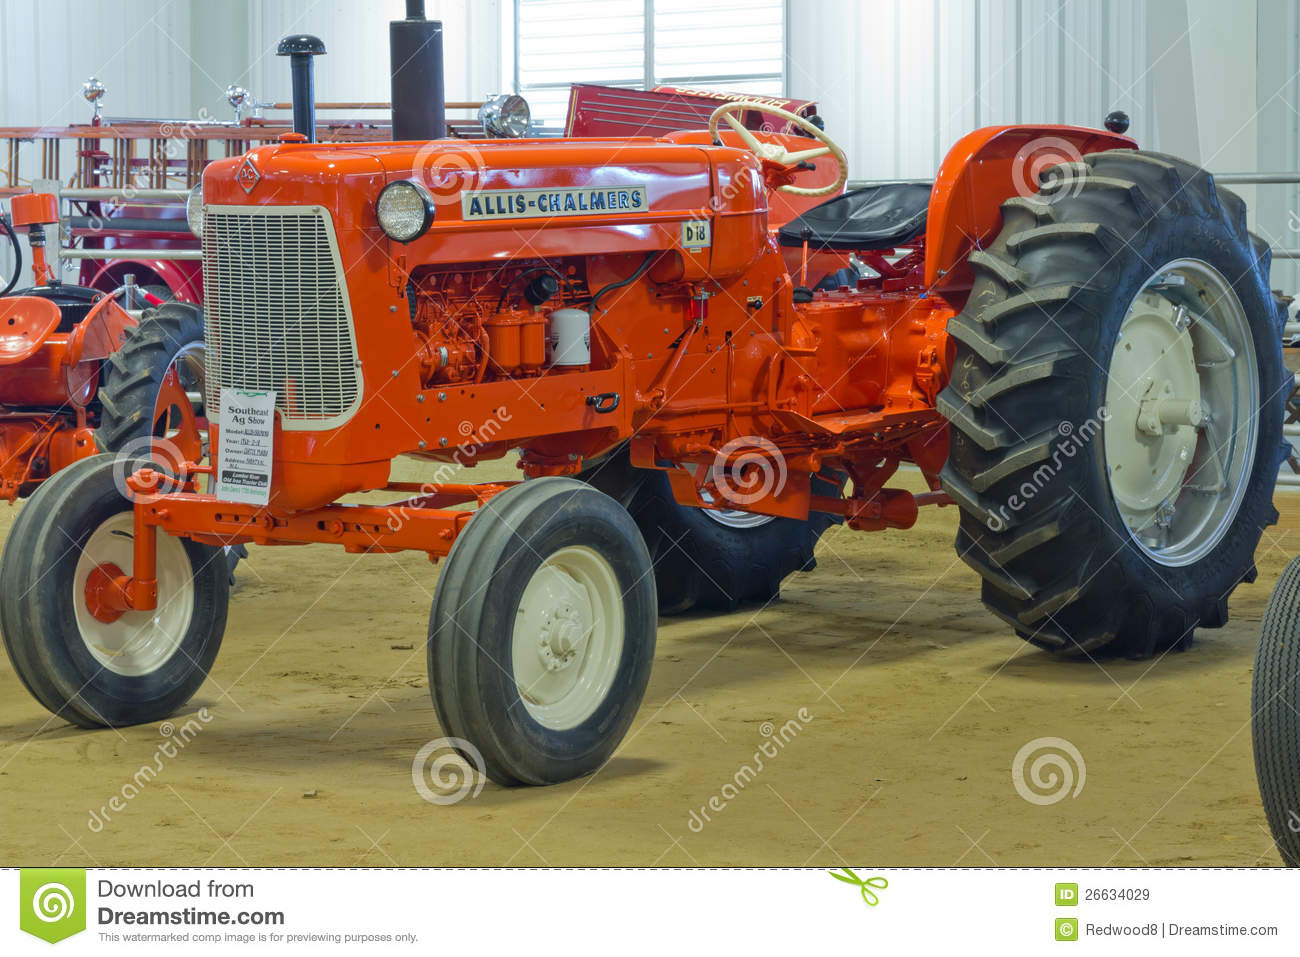 Allis Chalmers D 18 Farm Tractor Download Preview